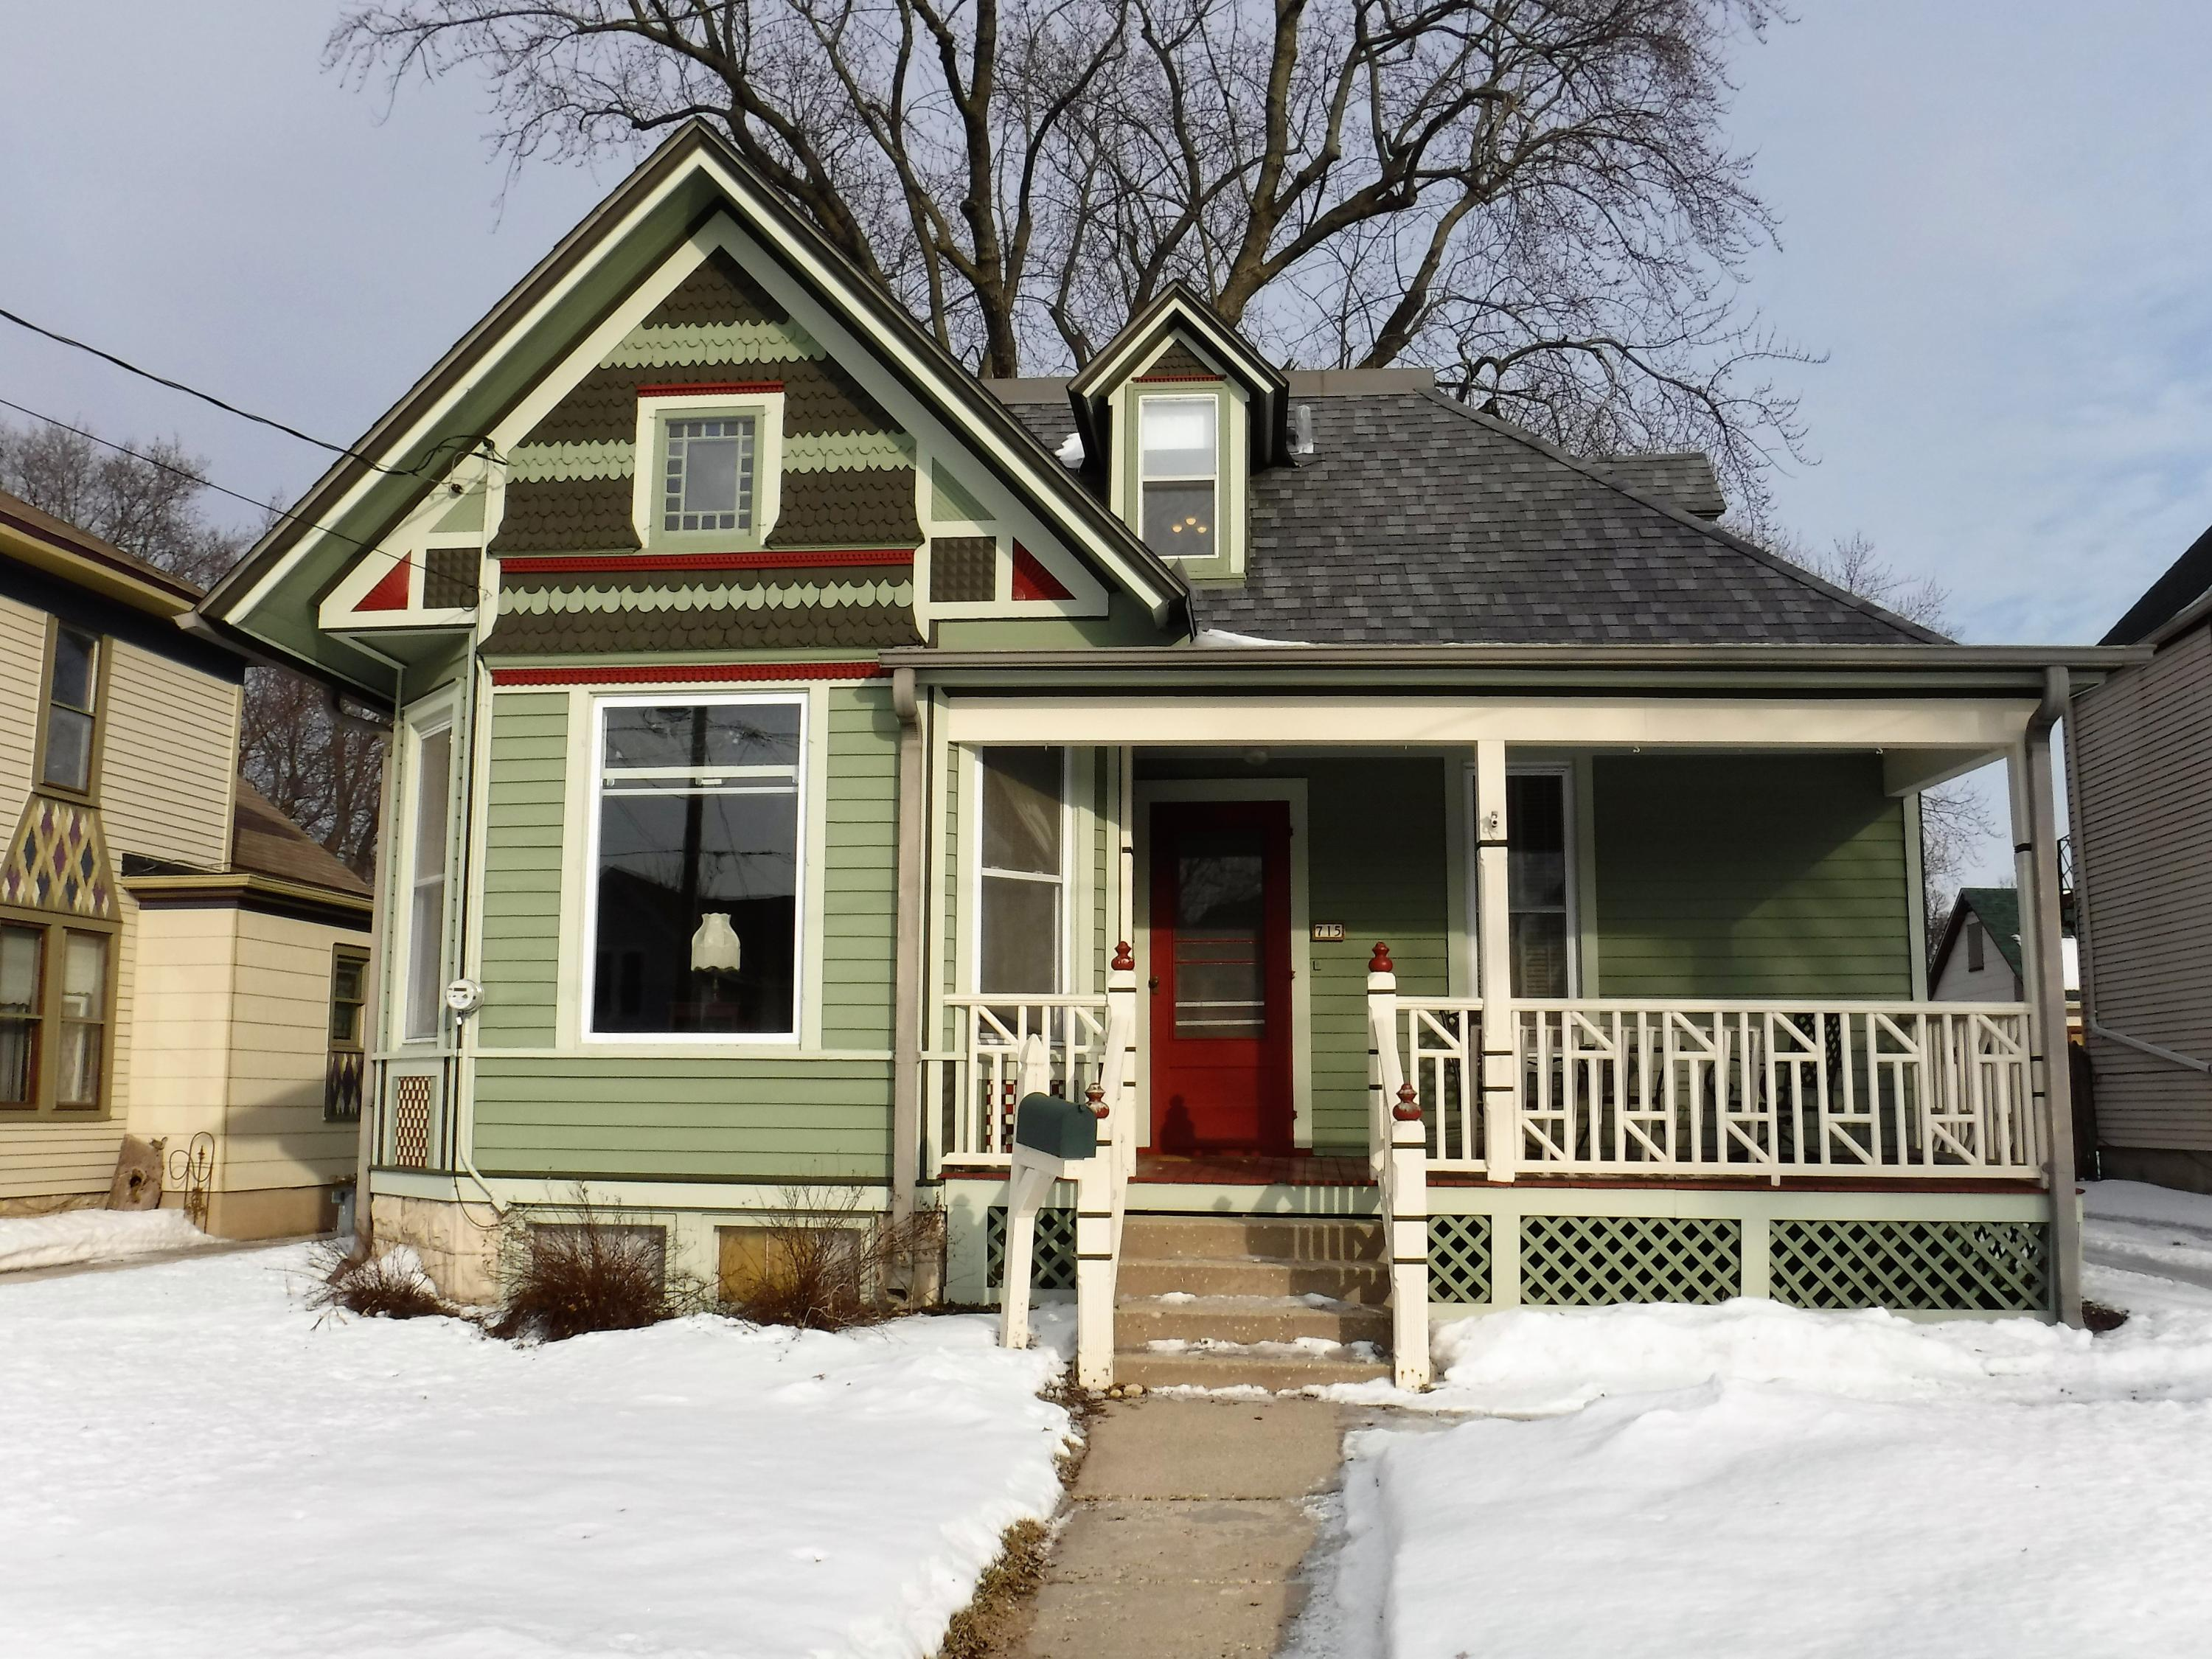 715 Oakland Ave, Waukesha, Wisconsin 53186, 3 Bedrooms Bedrooms, ,2 BathroomsBathrooms,Single-Family,For Sale,Oakland Ave,1624293